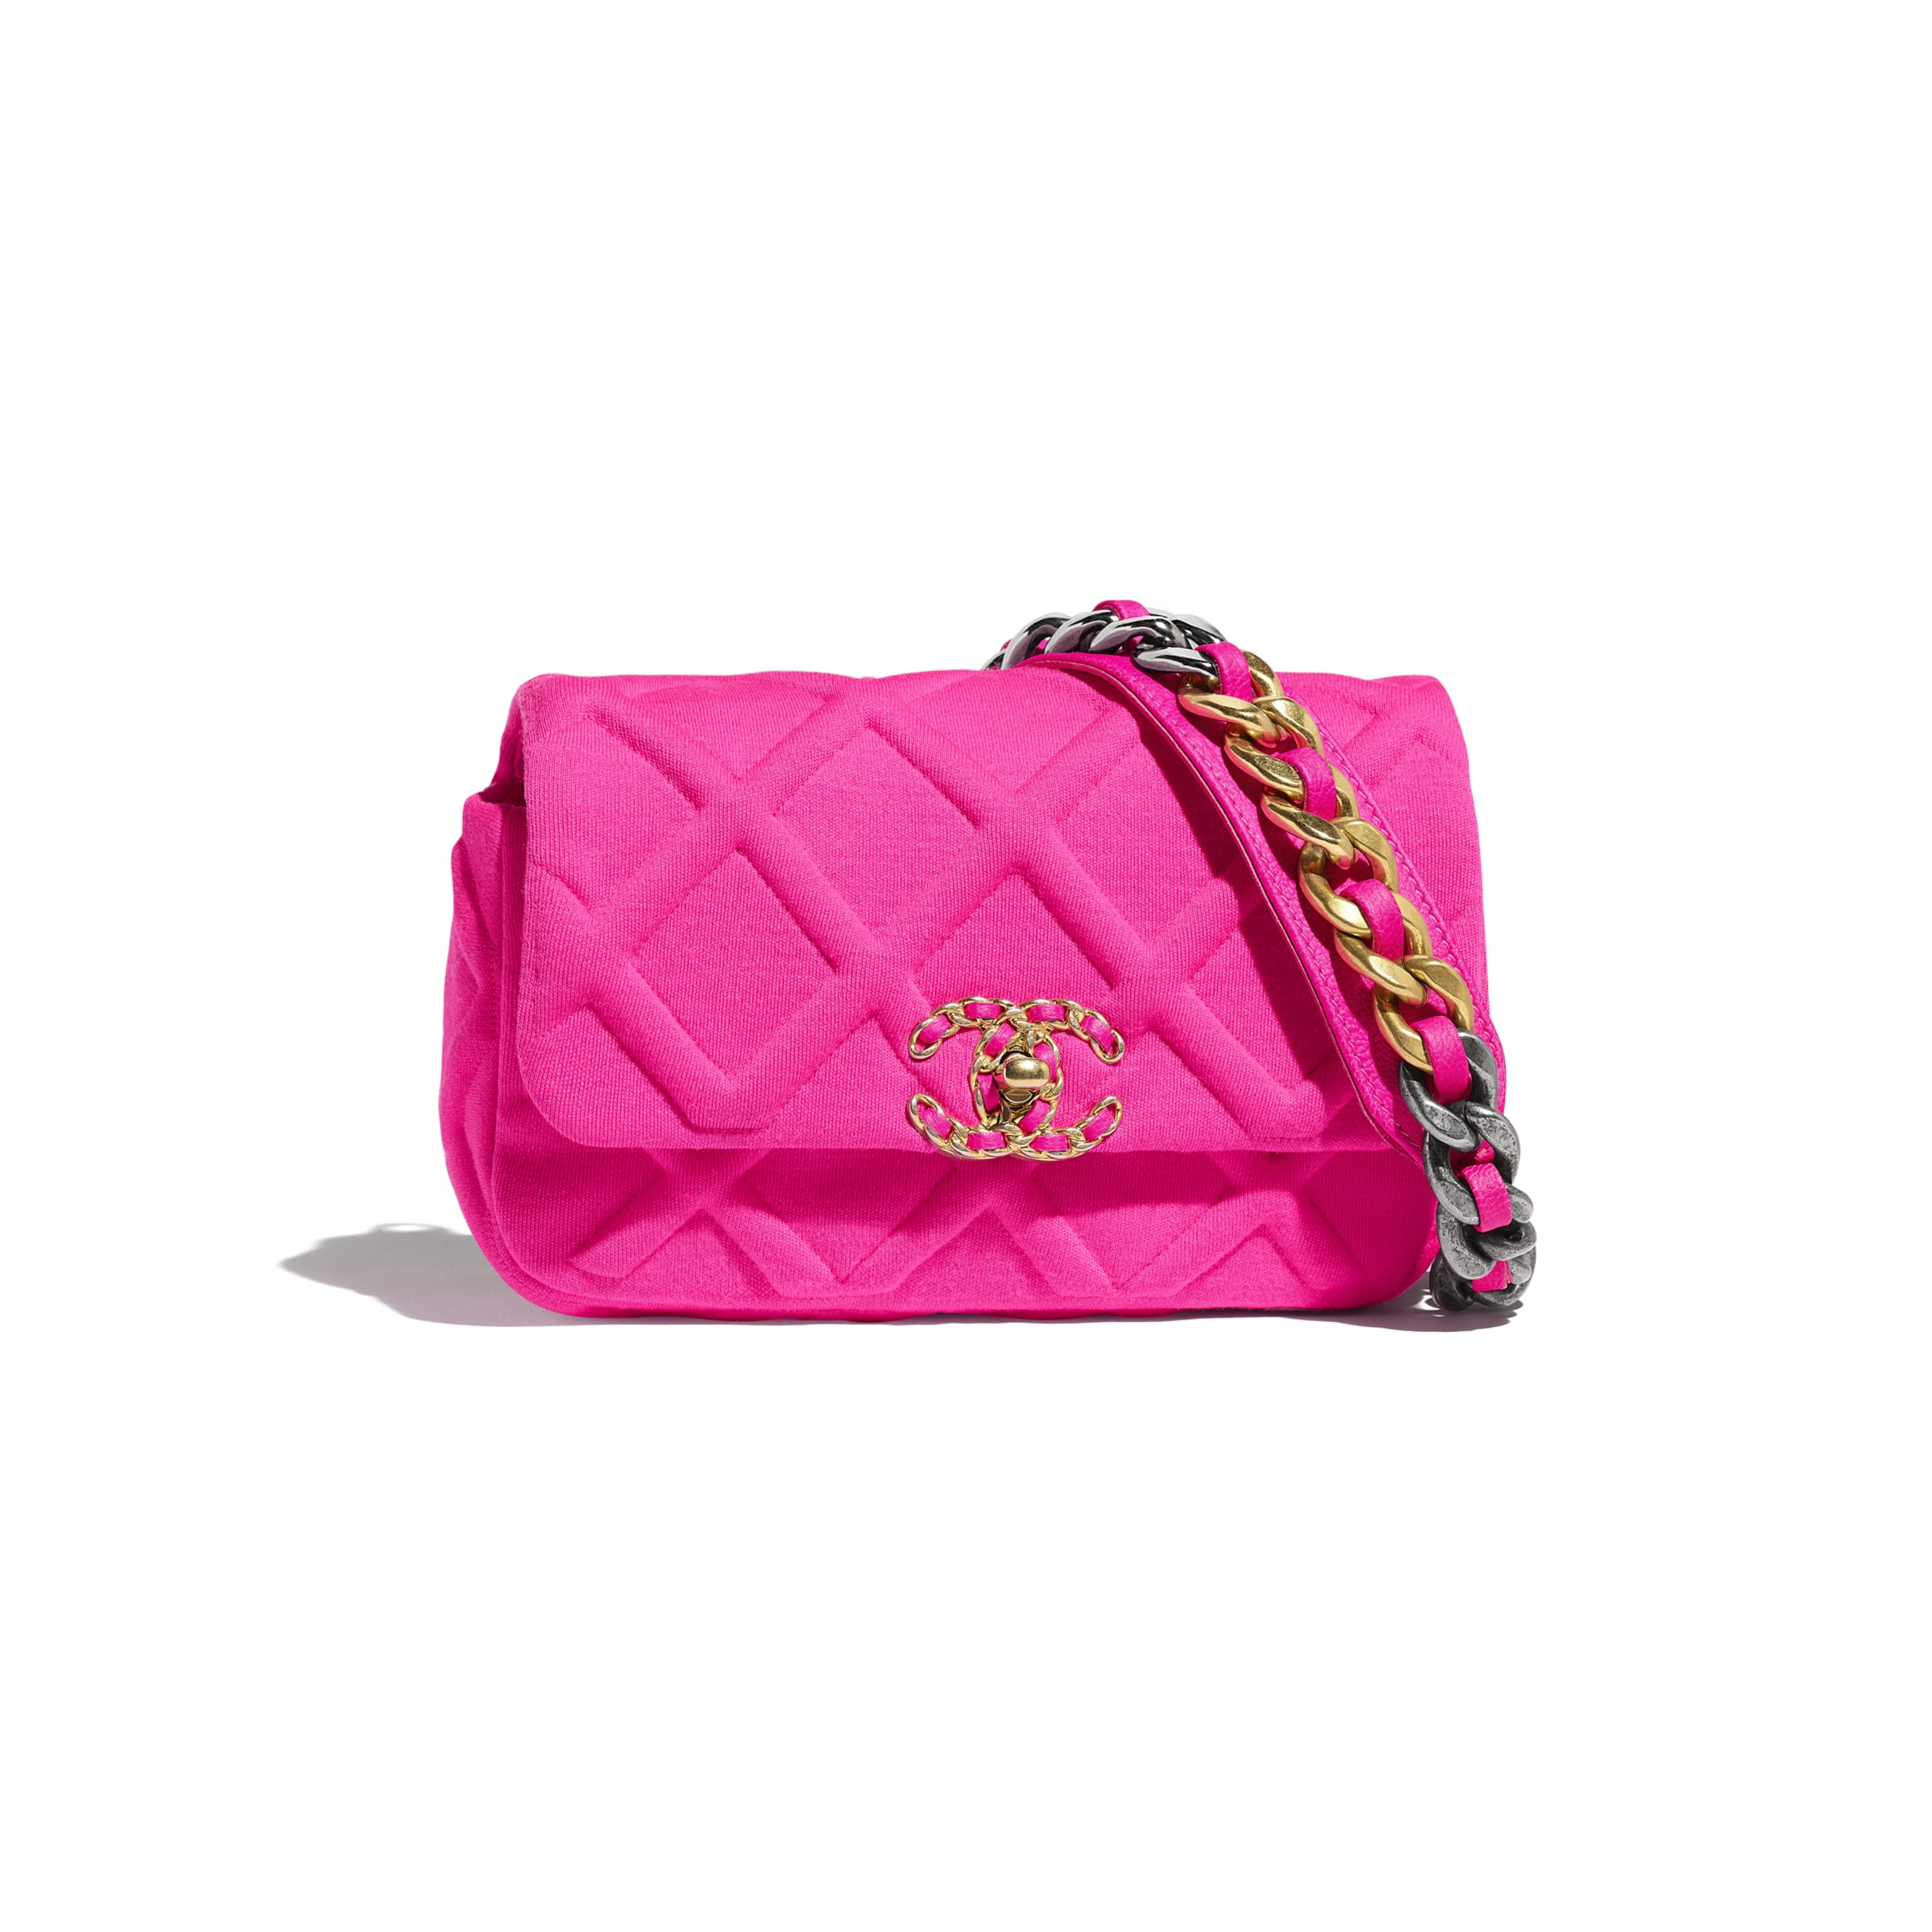 CHANEL 19 Waist Bag - Fuchsia - Jersey, Gold-Tone, Silver-Tone & Ruthenium-Finish Metal - Default view - see standard sized version